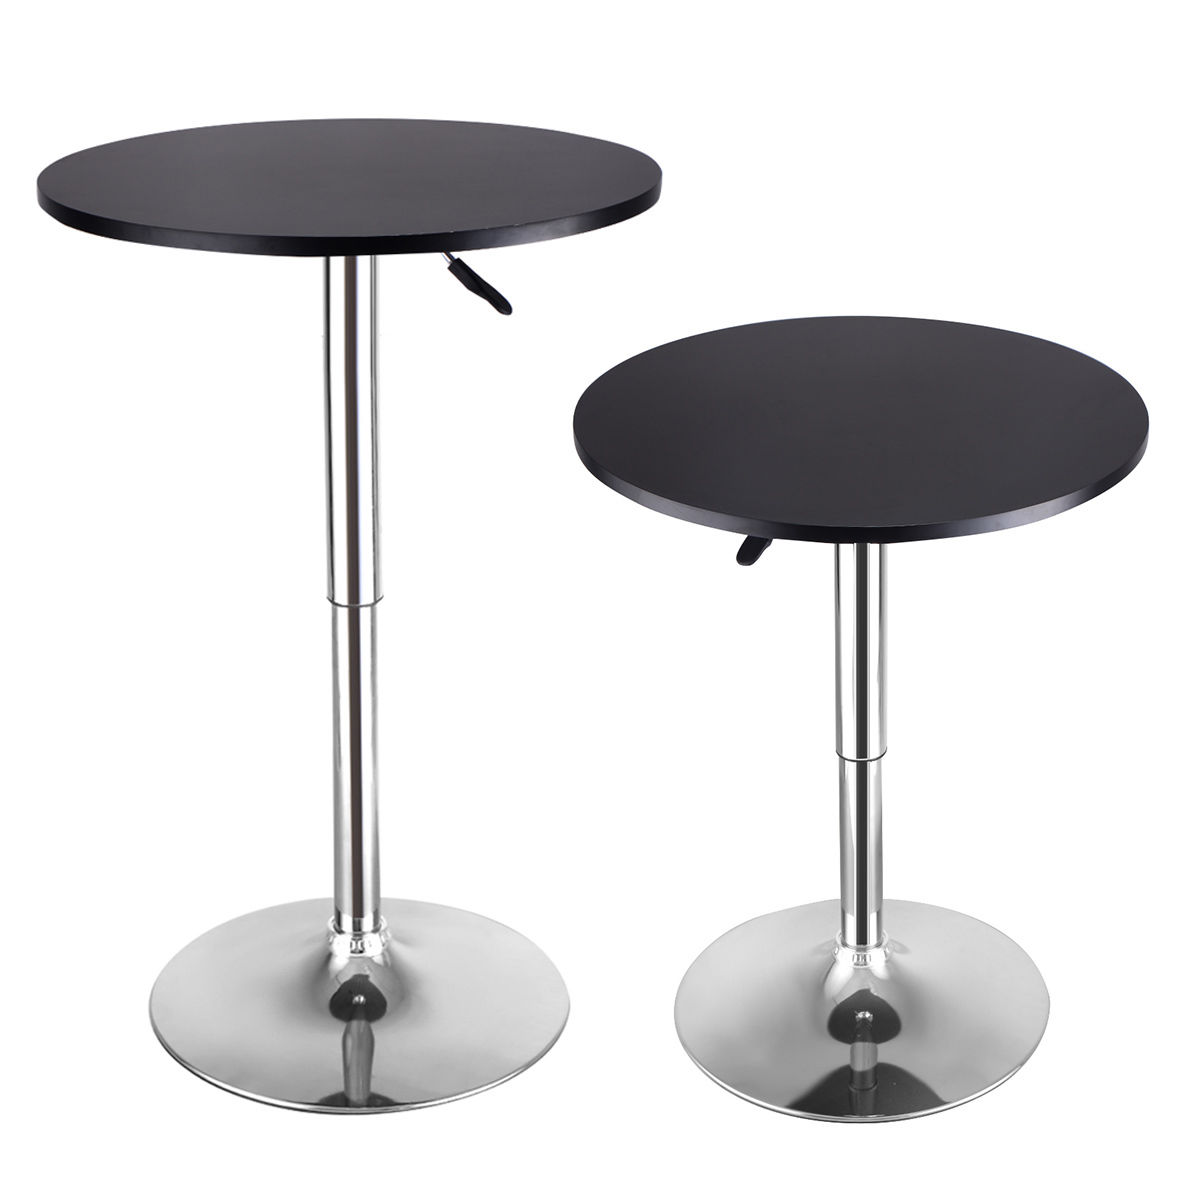 Costway Set of 2 Modern Round Pub Table Adjustable Bistro Pub Counter Wood Top Swivel by Costway